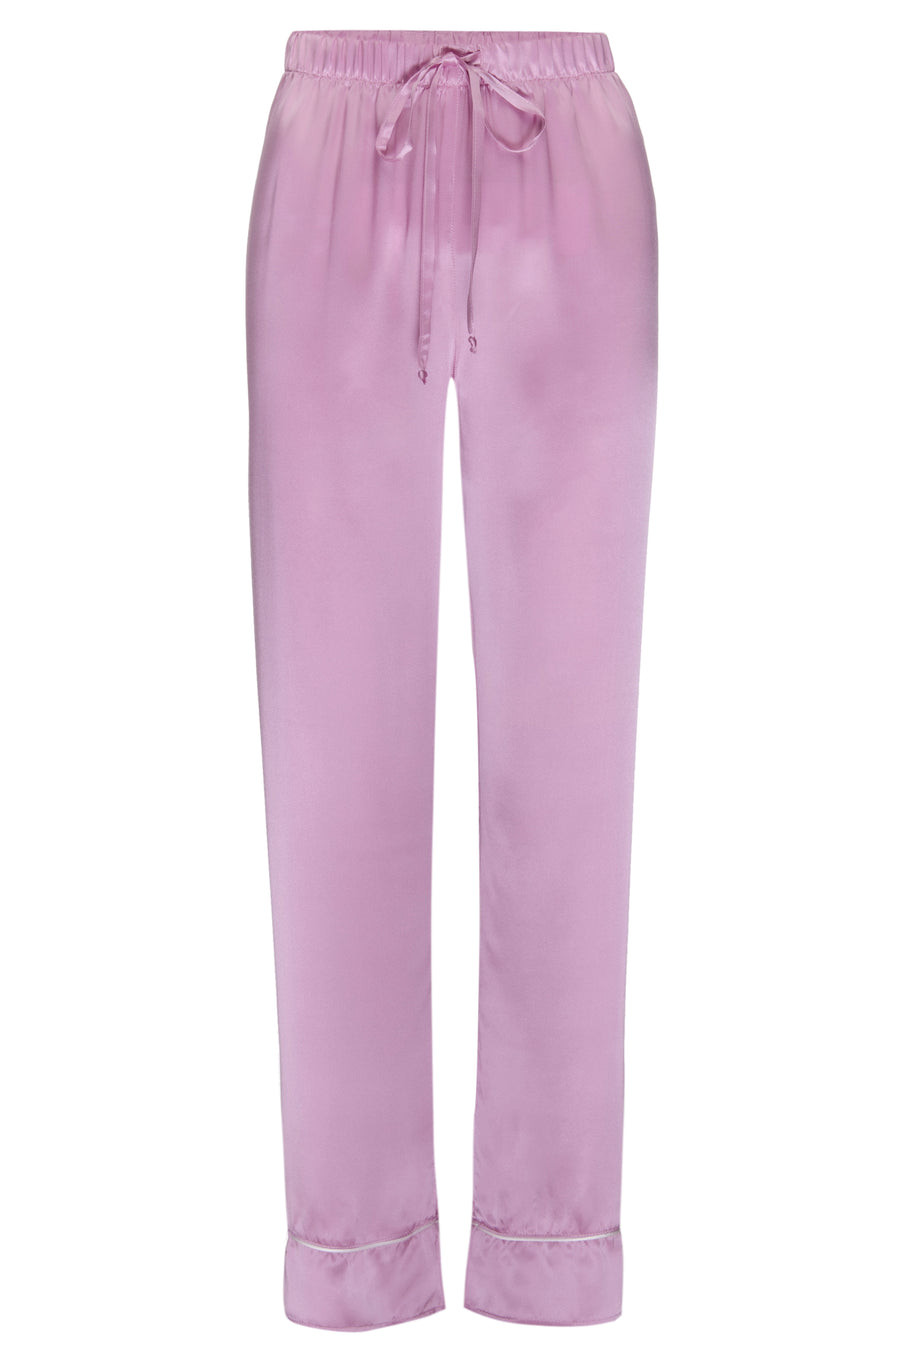 Silk Charmeuse PJ Pants: Orchid Pink